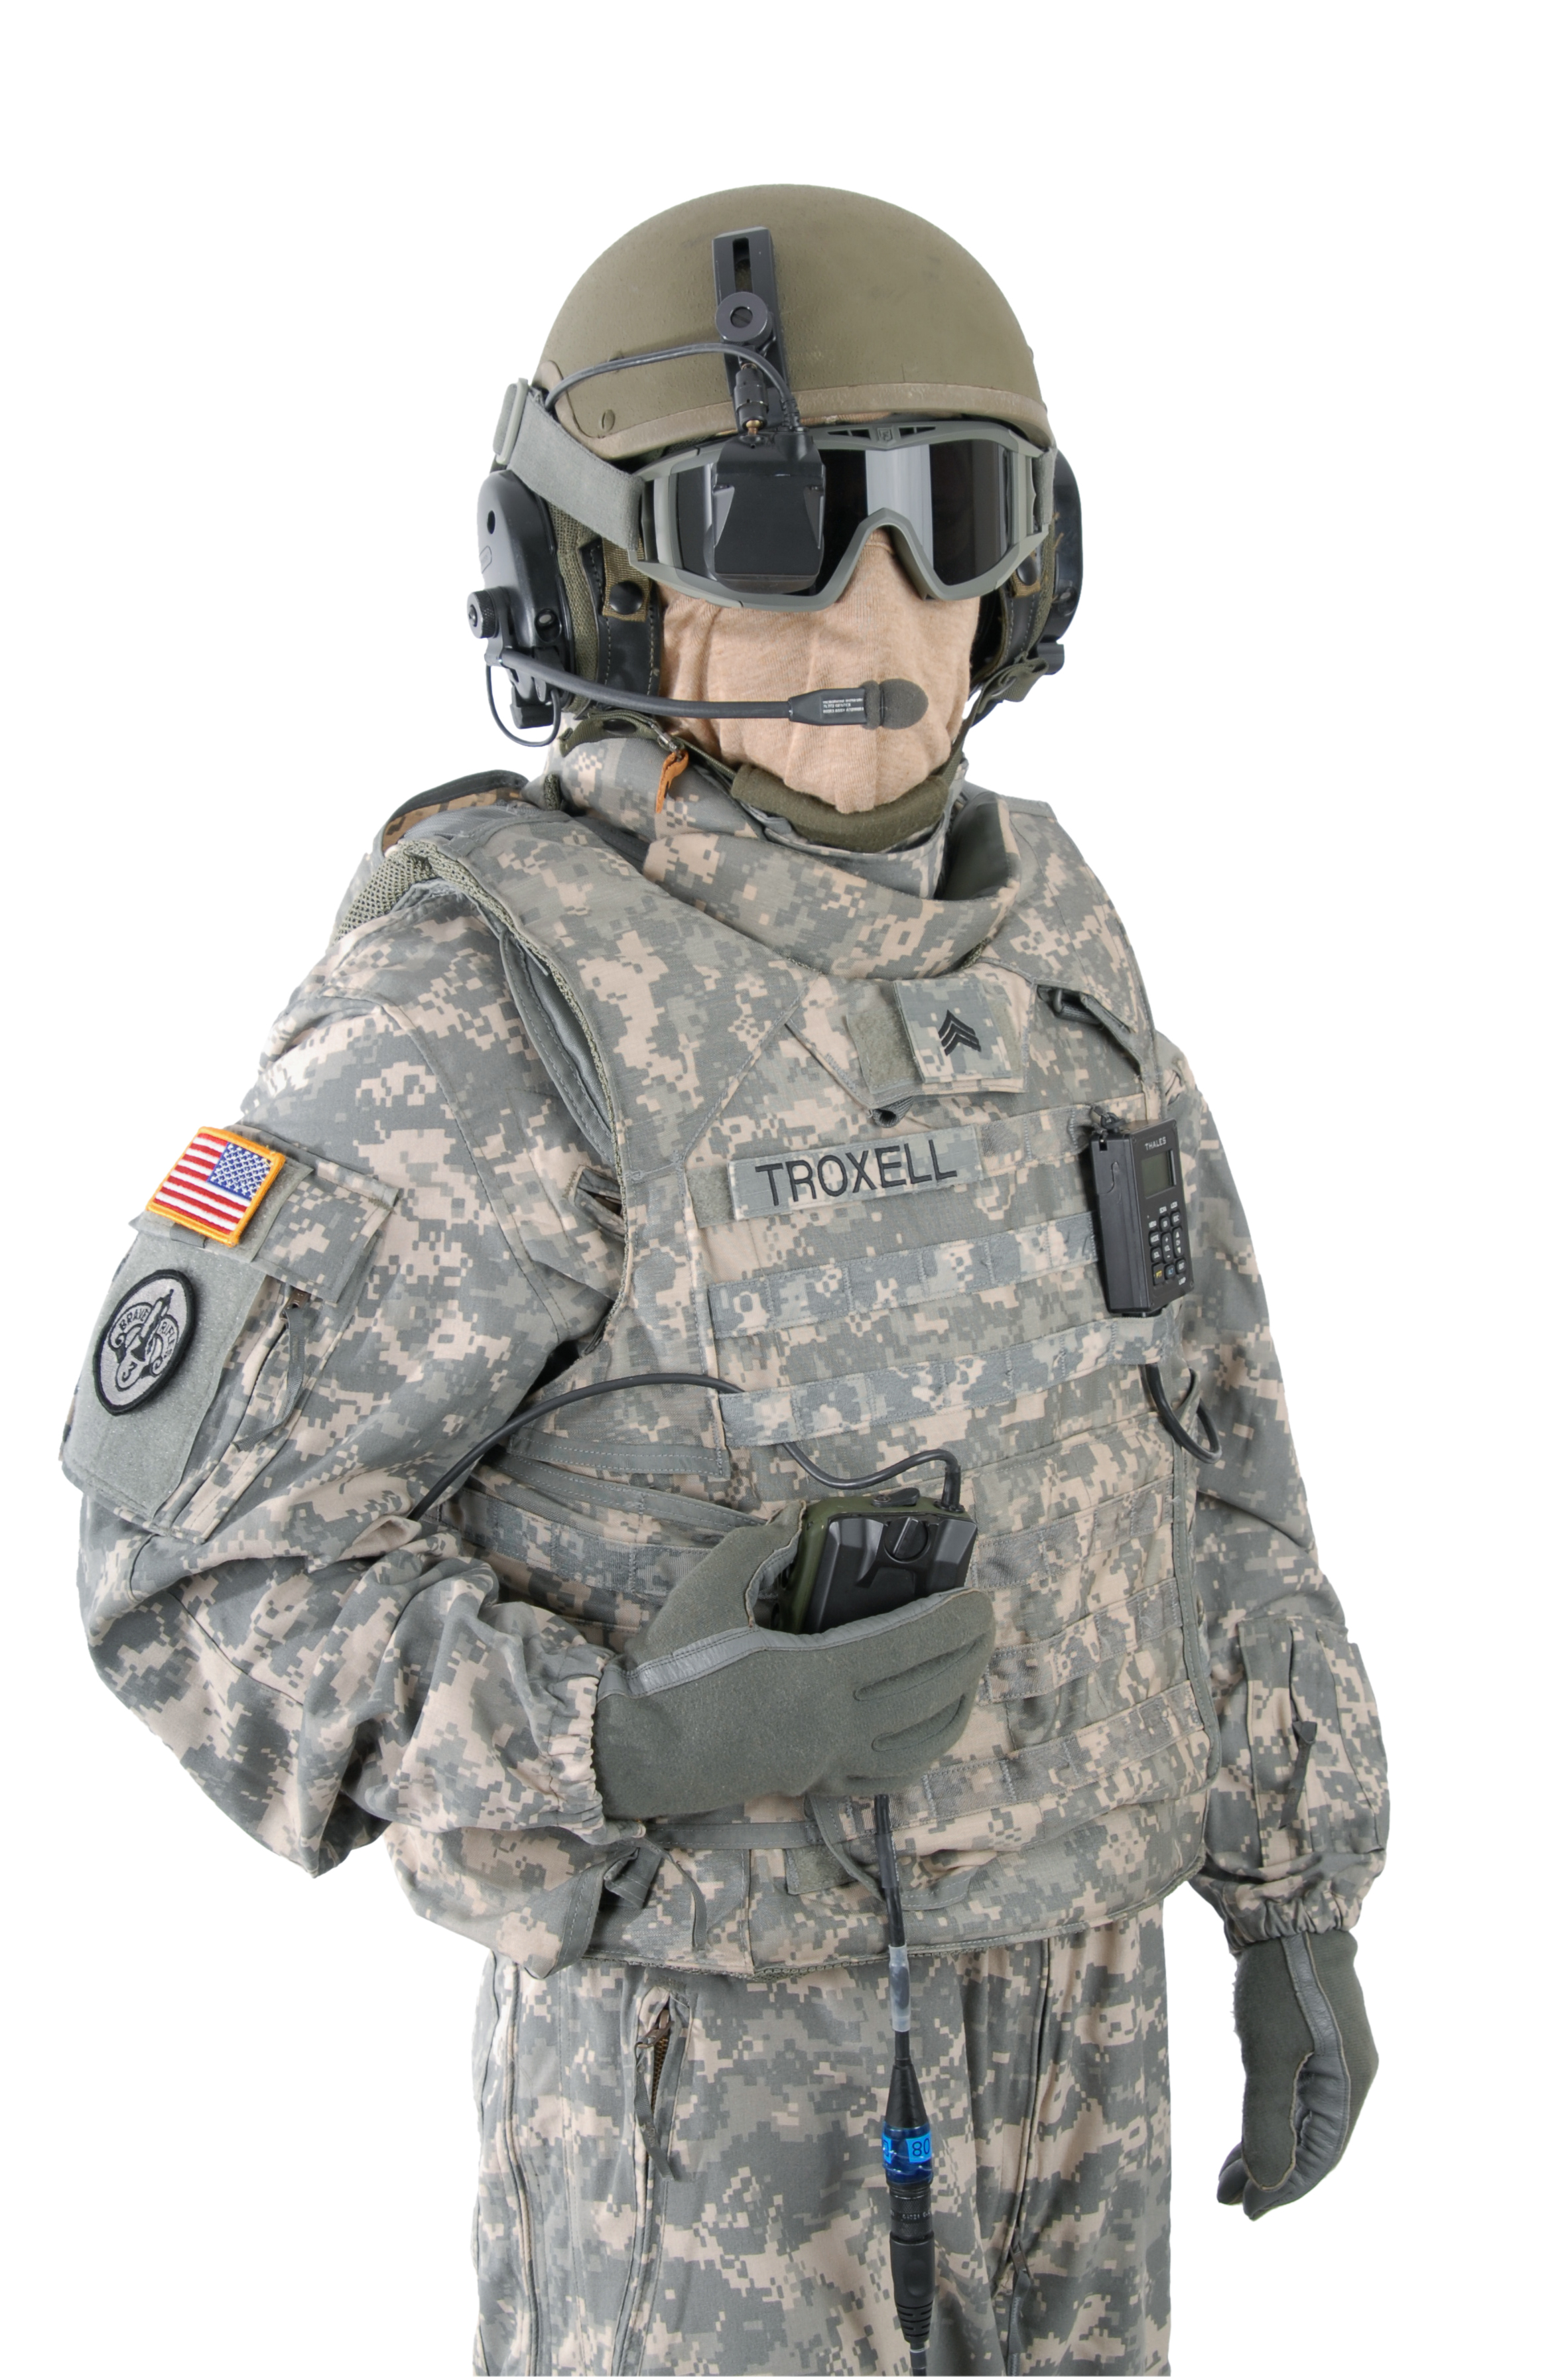 Mounted_Soldier_System_cropped.jpg